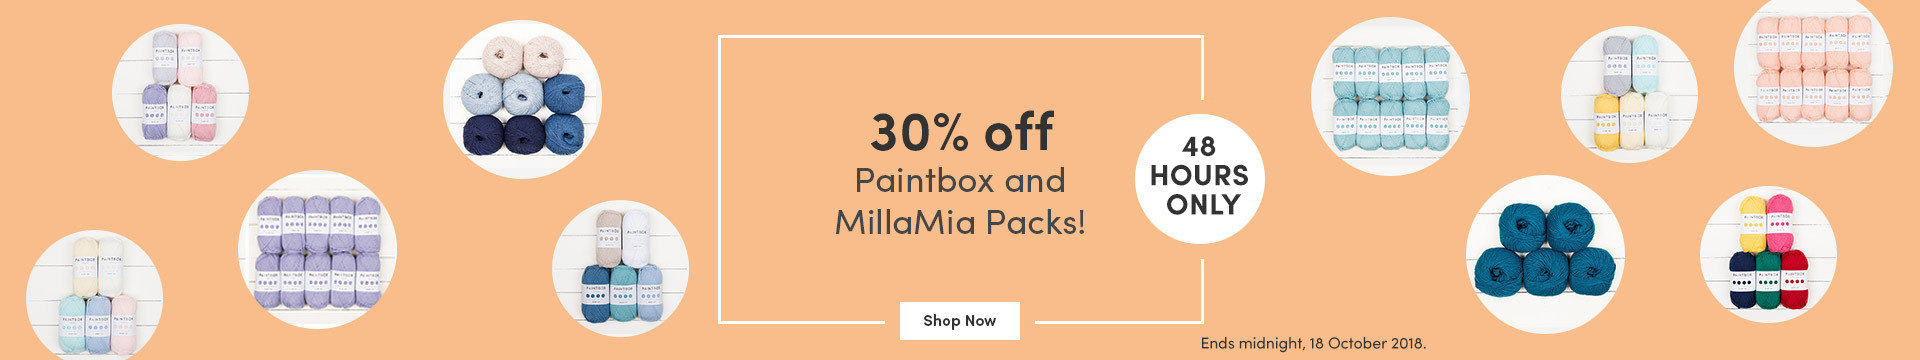 LK NA 30% off PB & MM Packs 171018